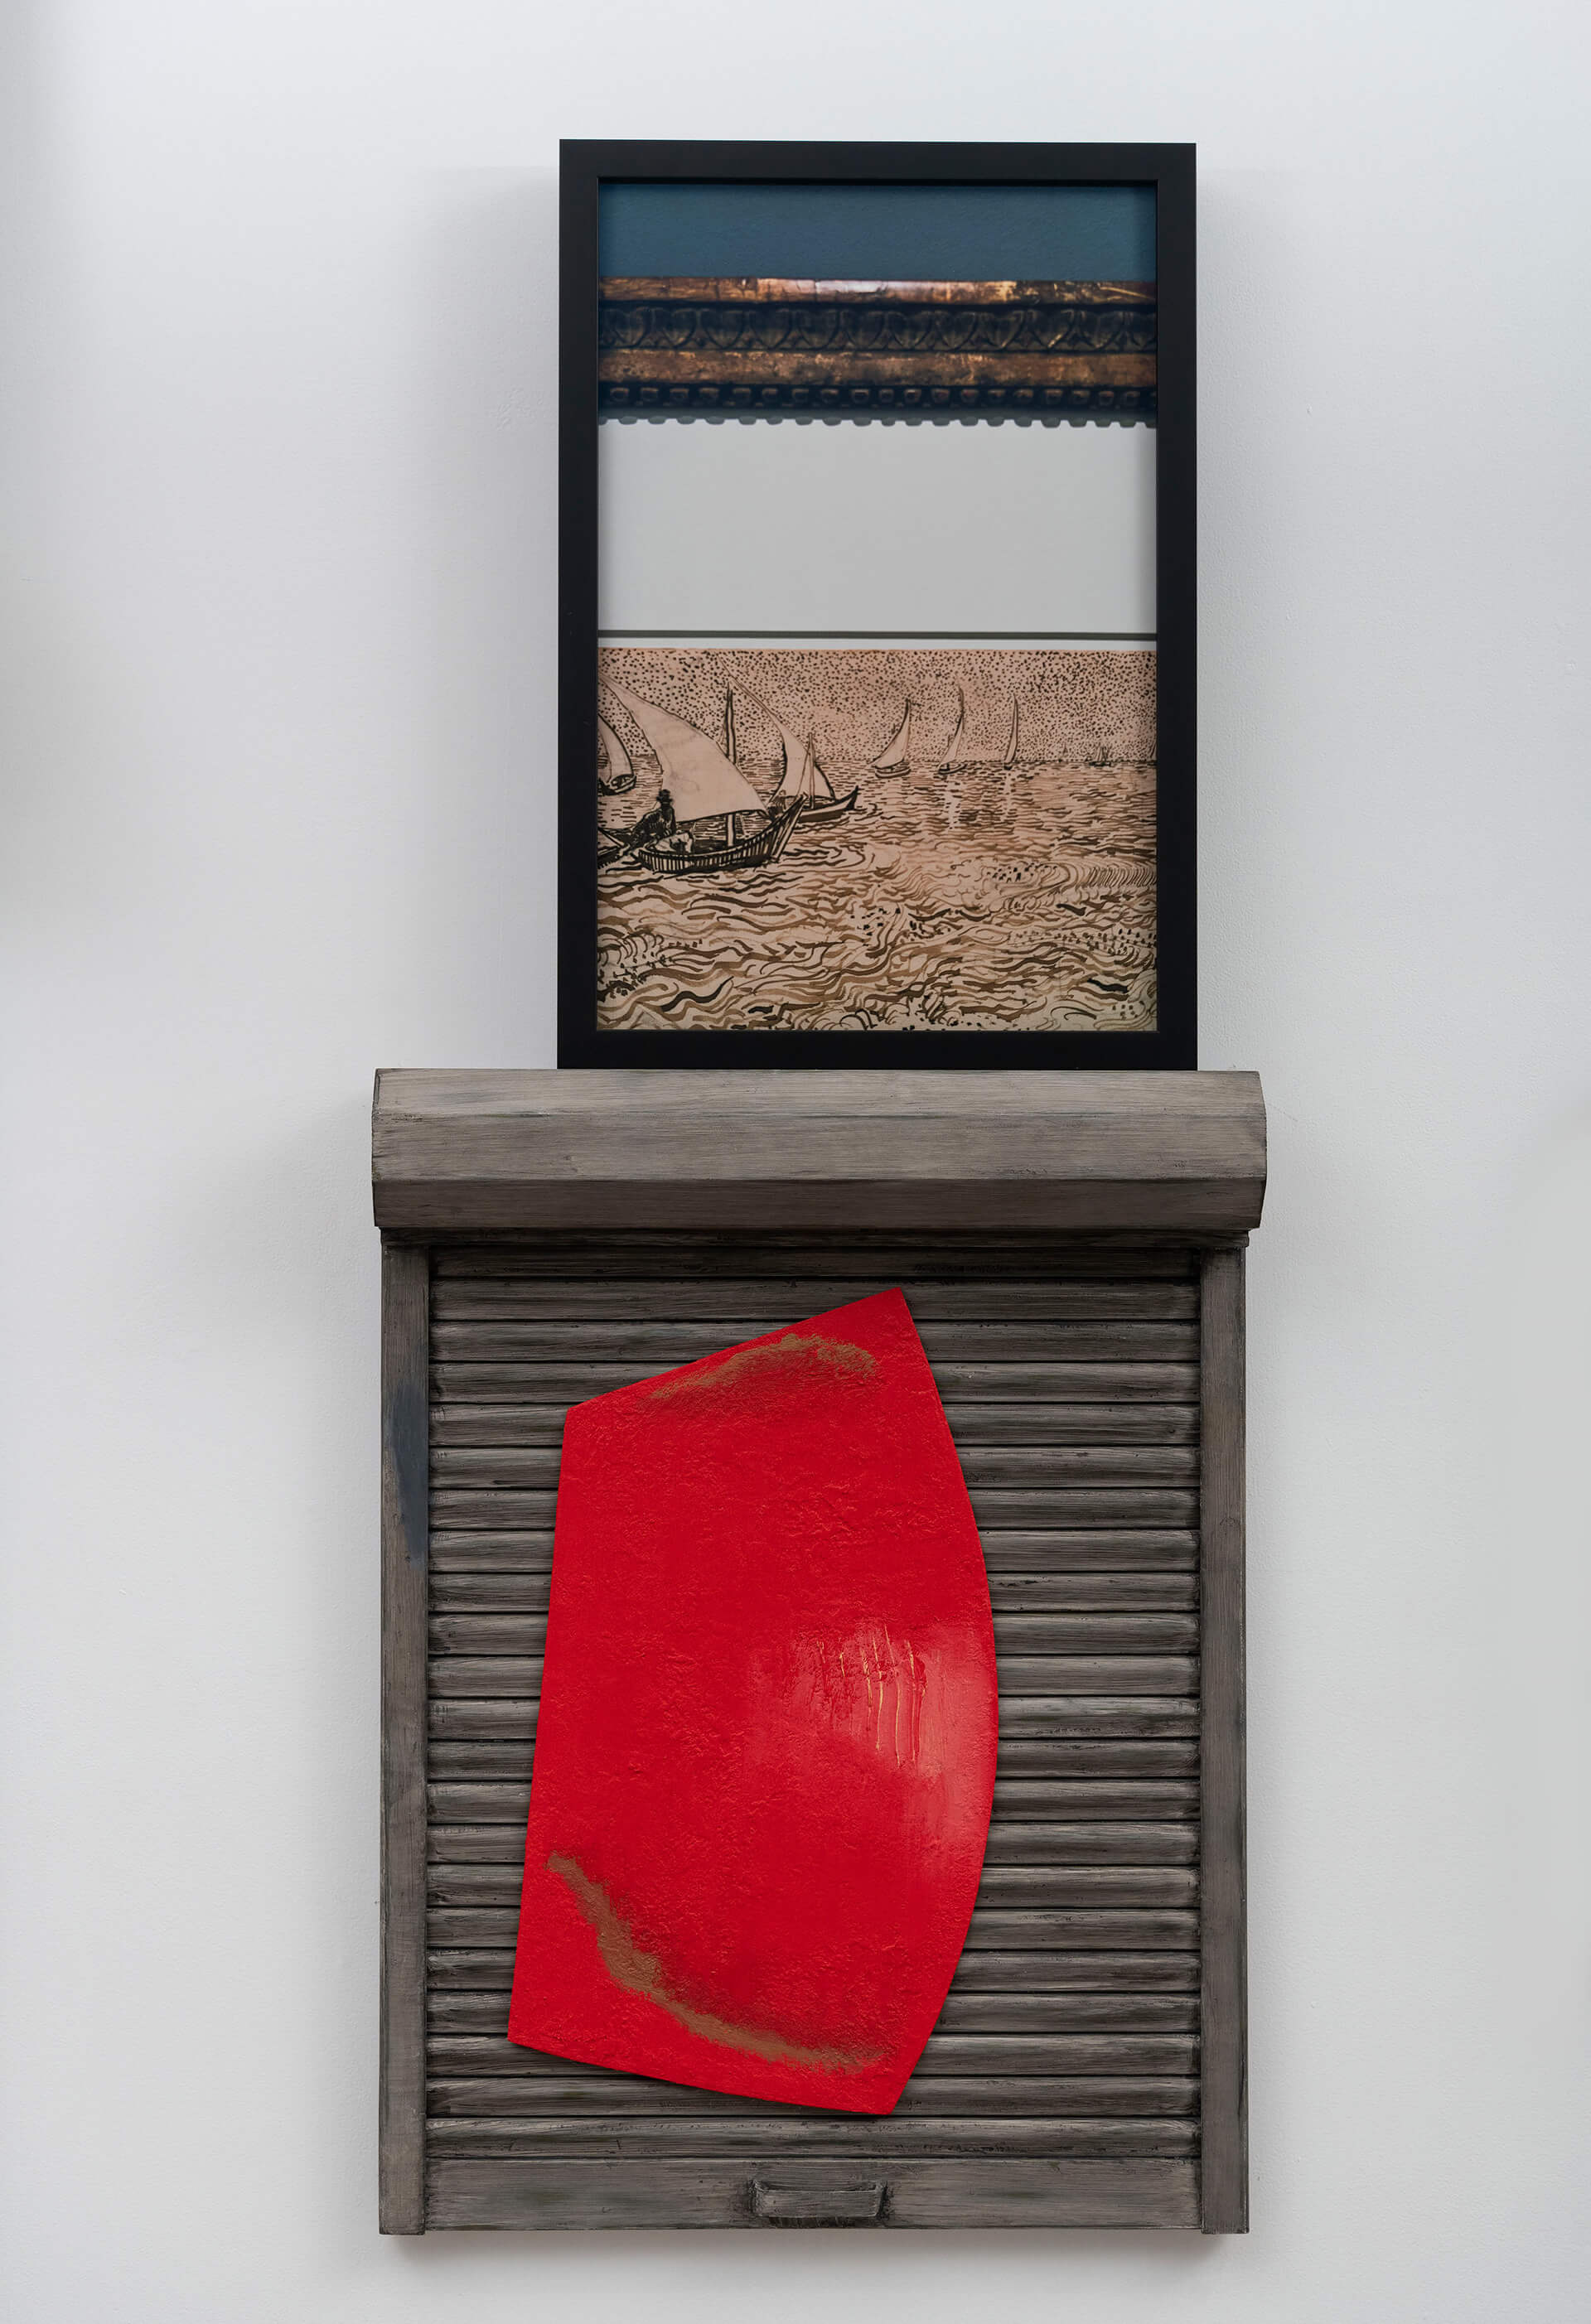 Red Sail, oil and polyester putty on galvanized steel, framed photographs printed on archival digital hahnemuehle bamboo paper 2019, by Atul Dodiya for Stammer in the Shade at Vadehra Art Gallery, till February 29 